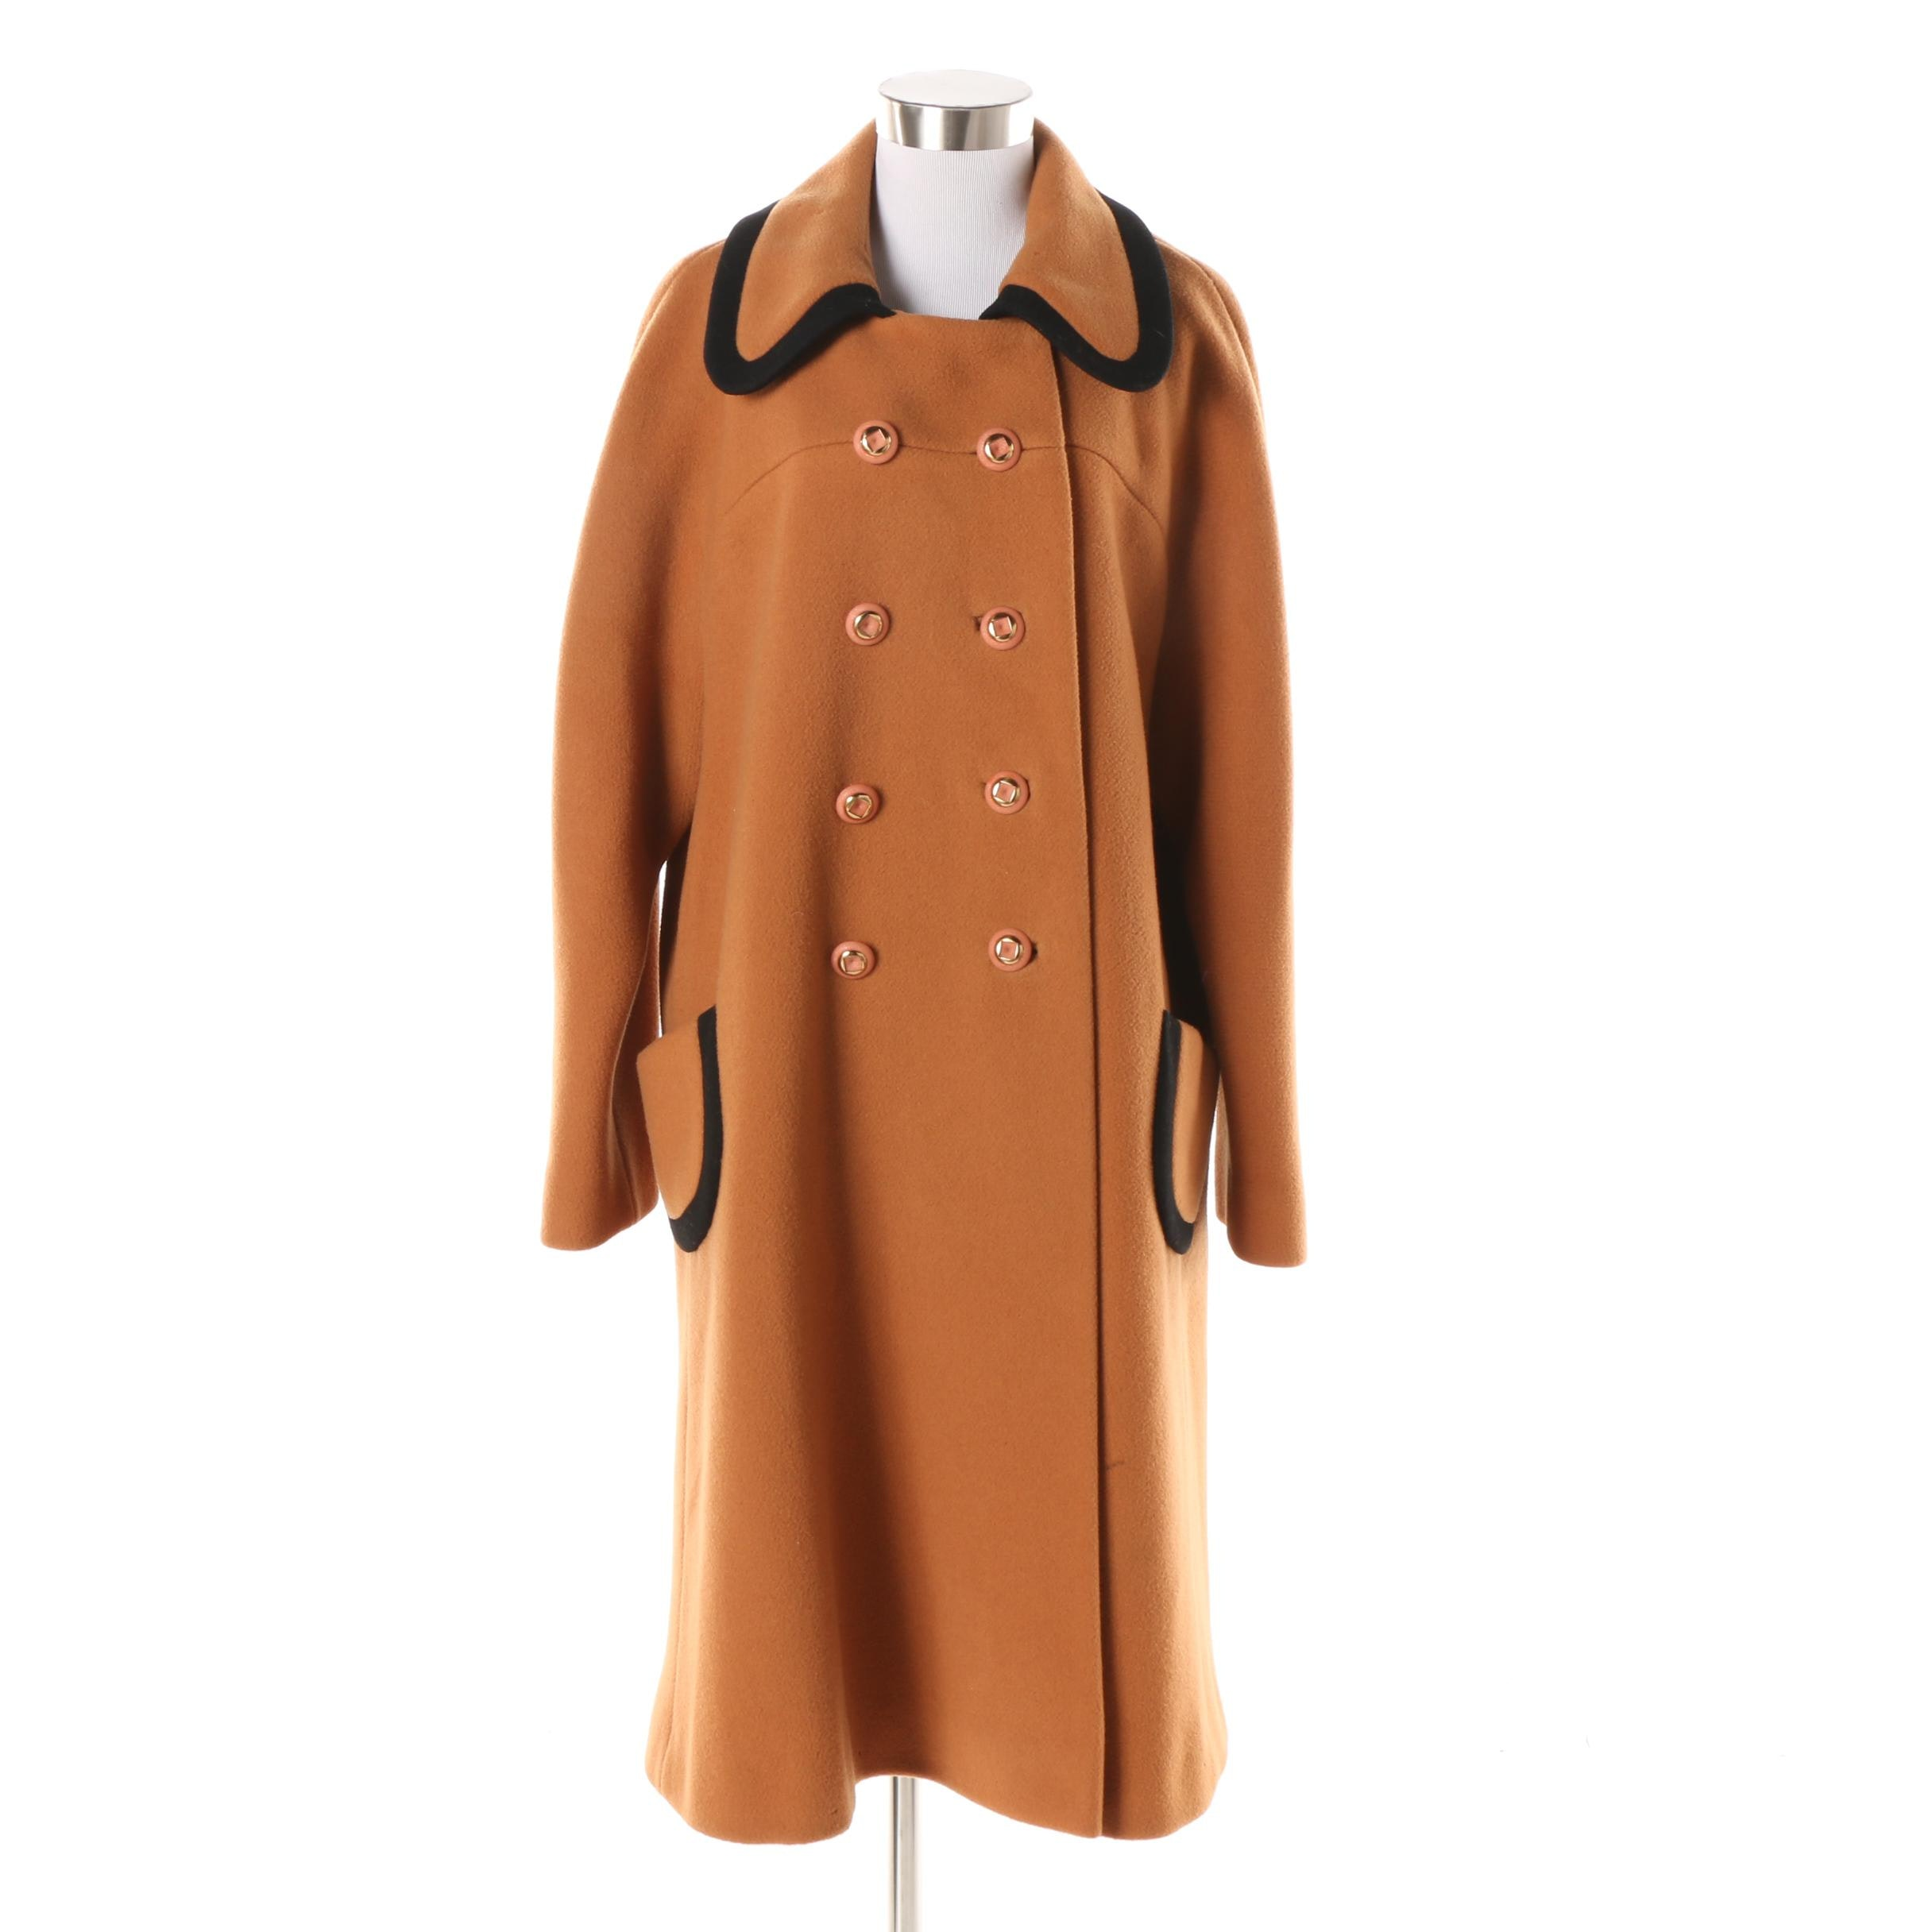 Women's Vintage Deardon Burnt Orange Wool Double-Breasted Coat